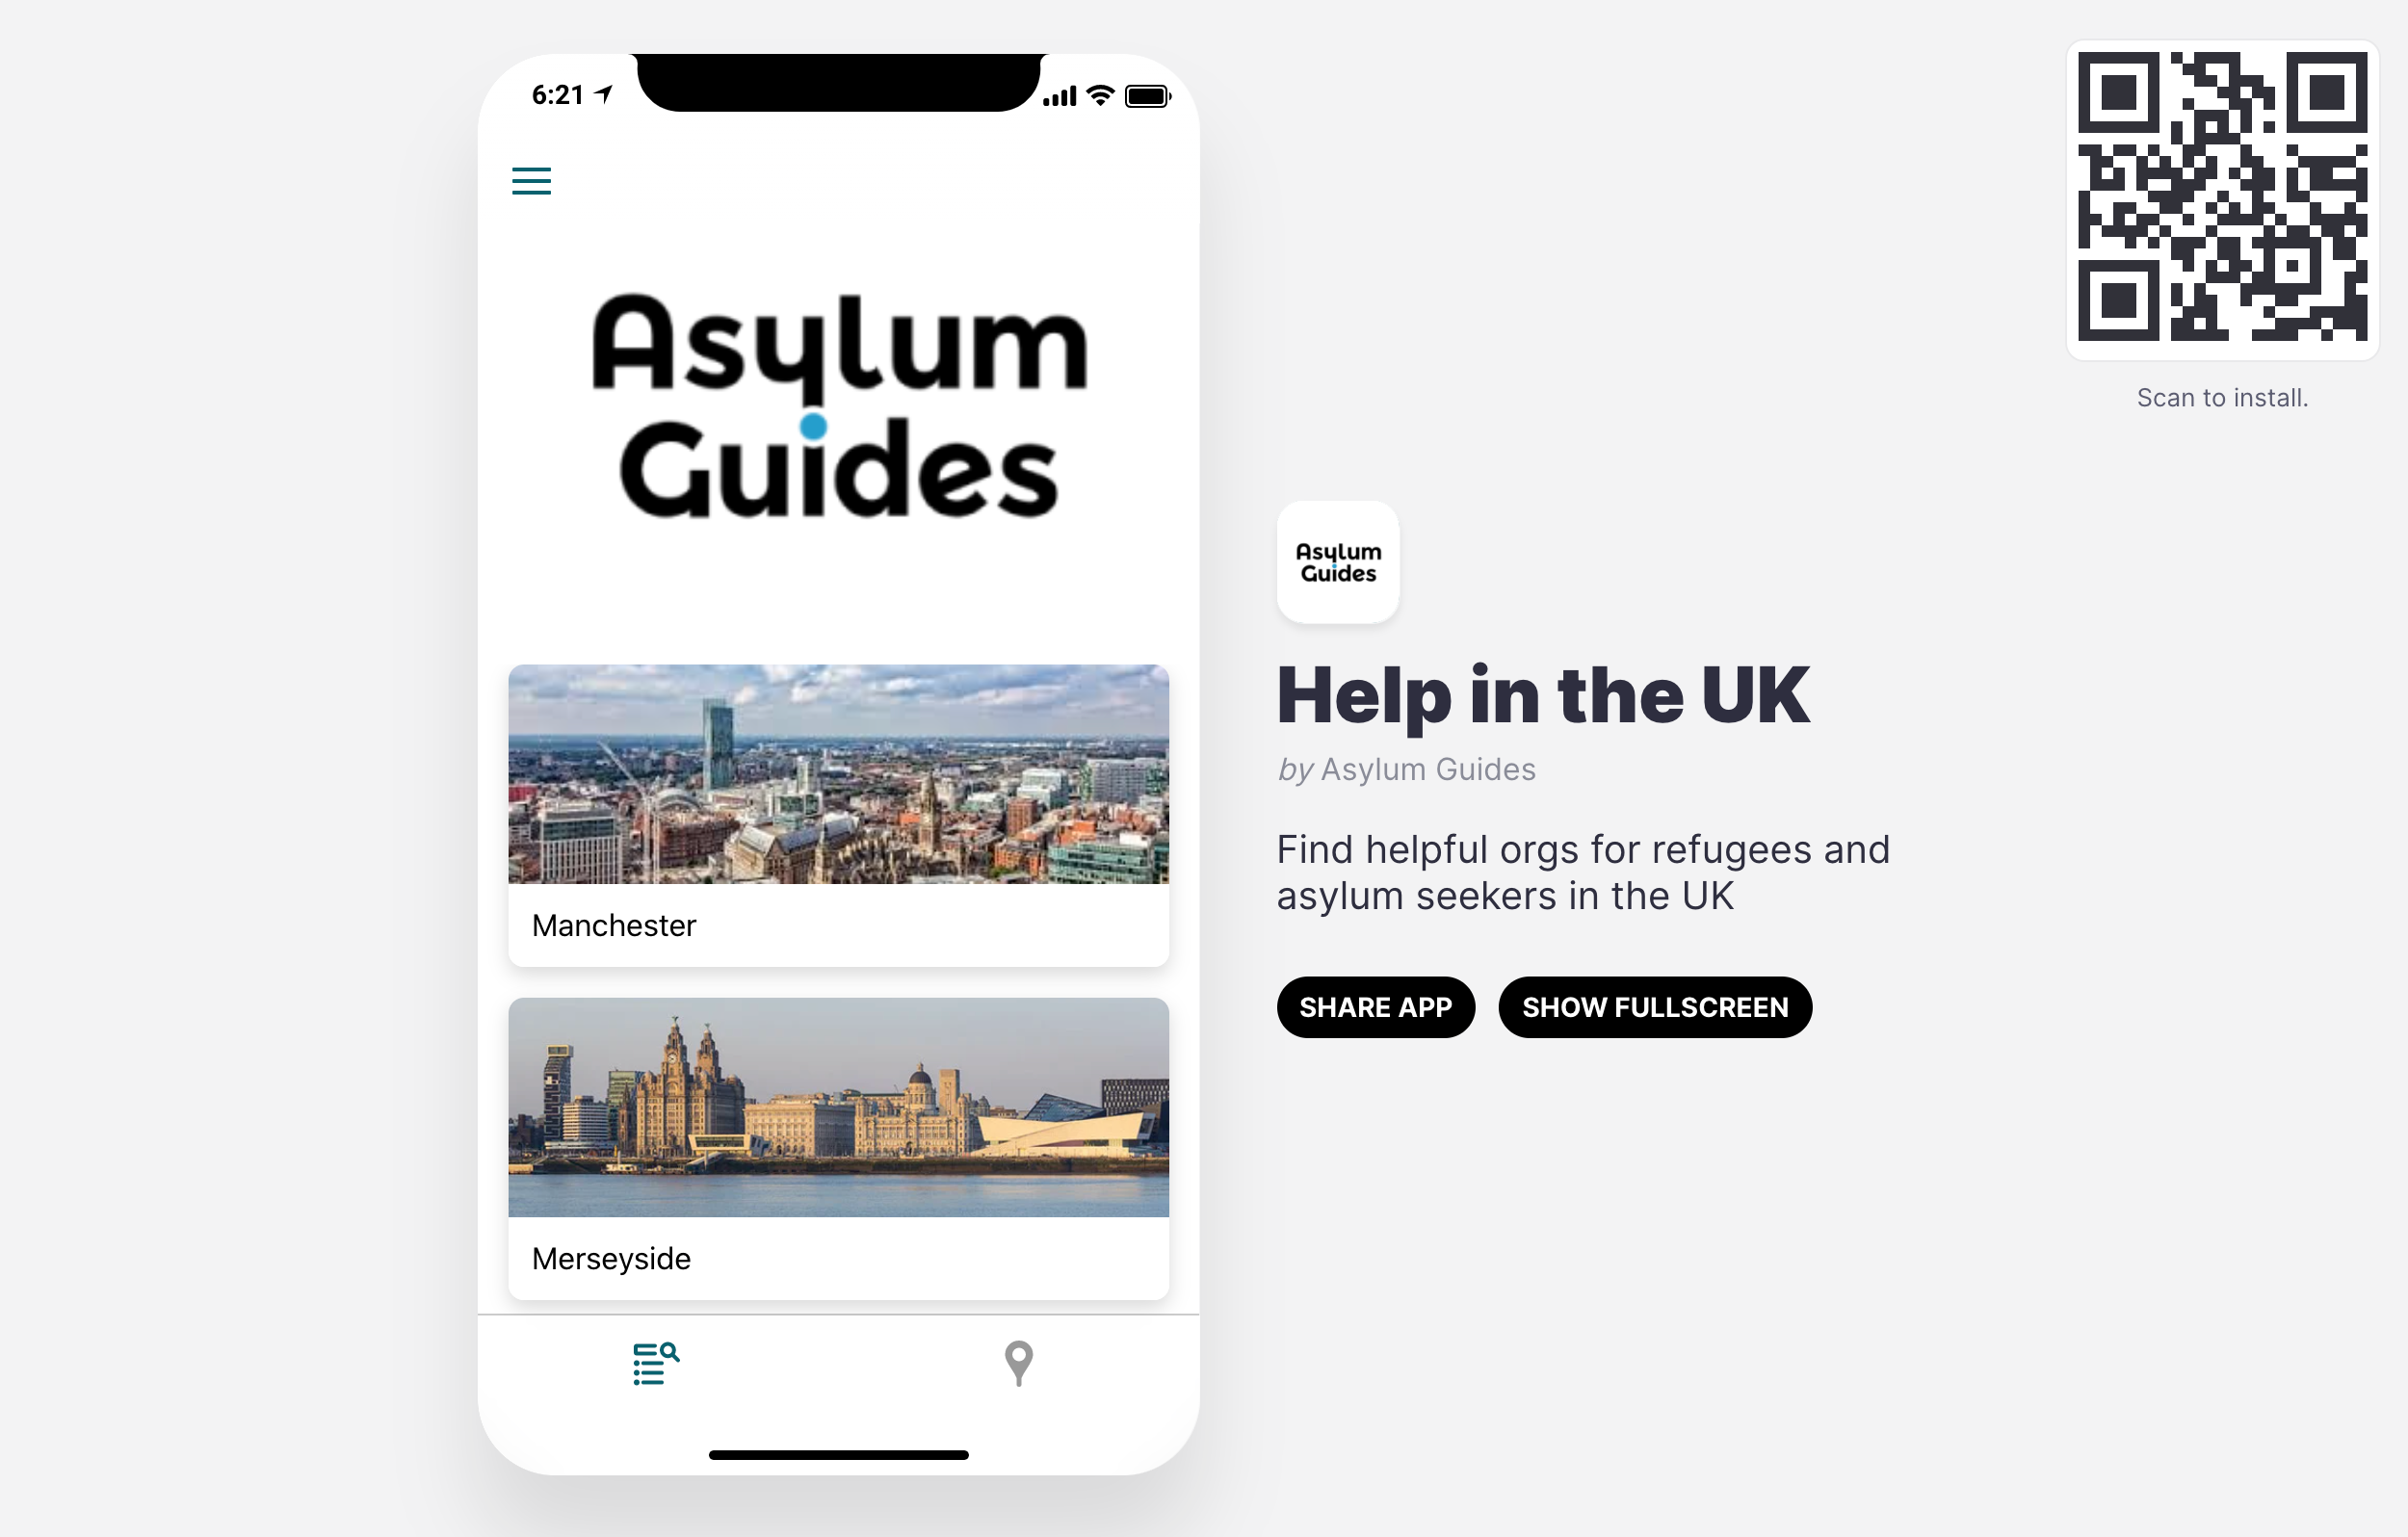 Asylum Guides - Help in the UK